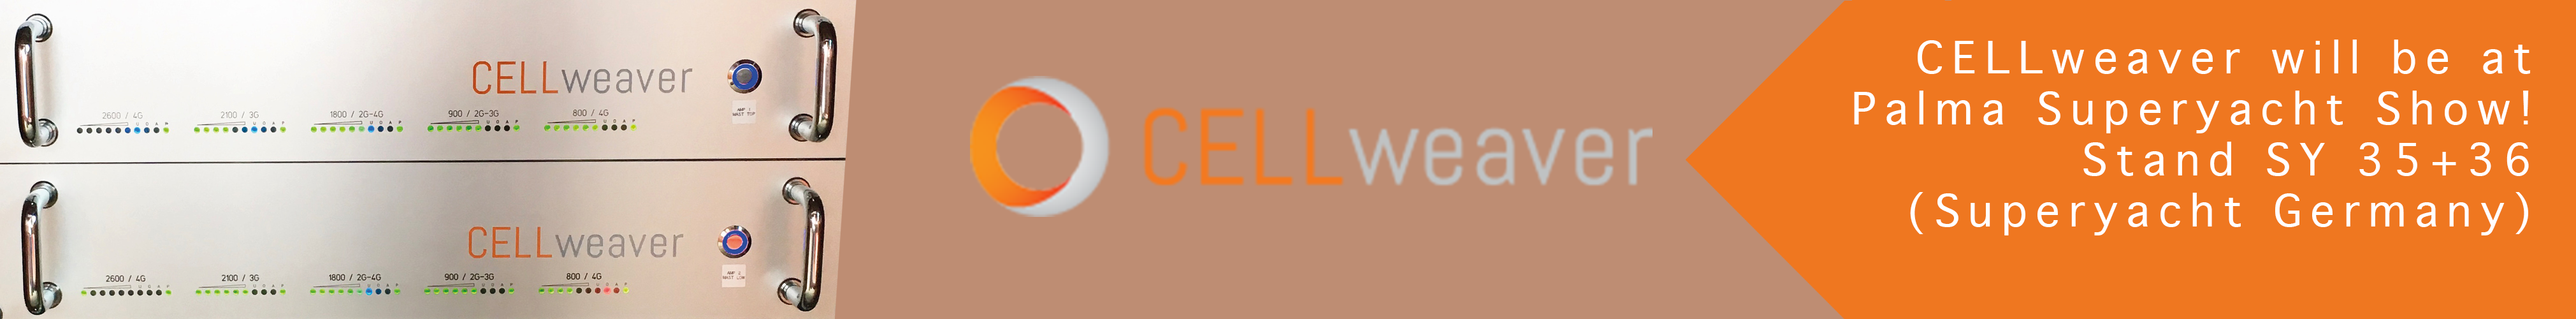 CELLweaver at Palma Superyacht Show 2018